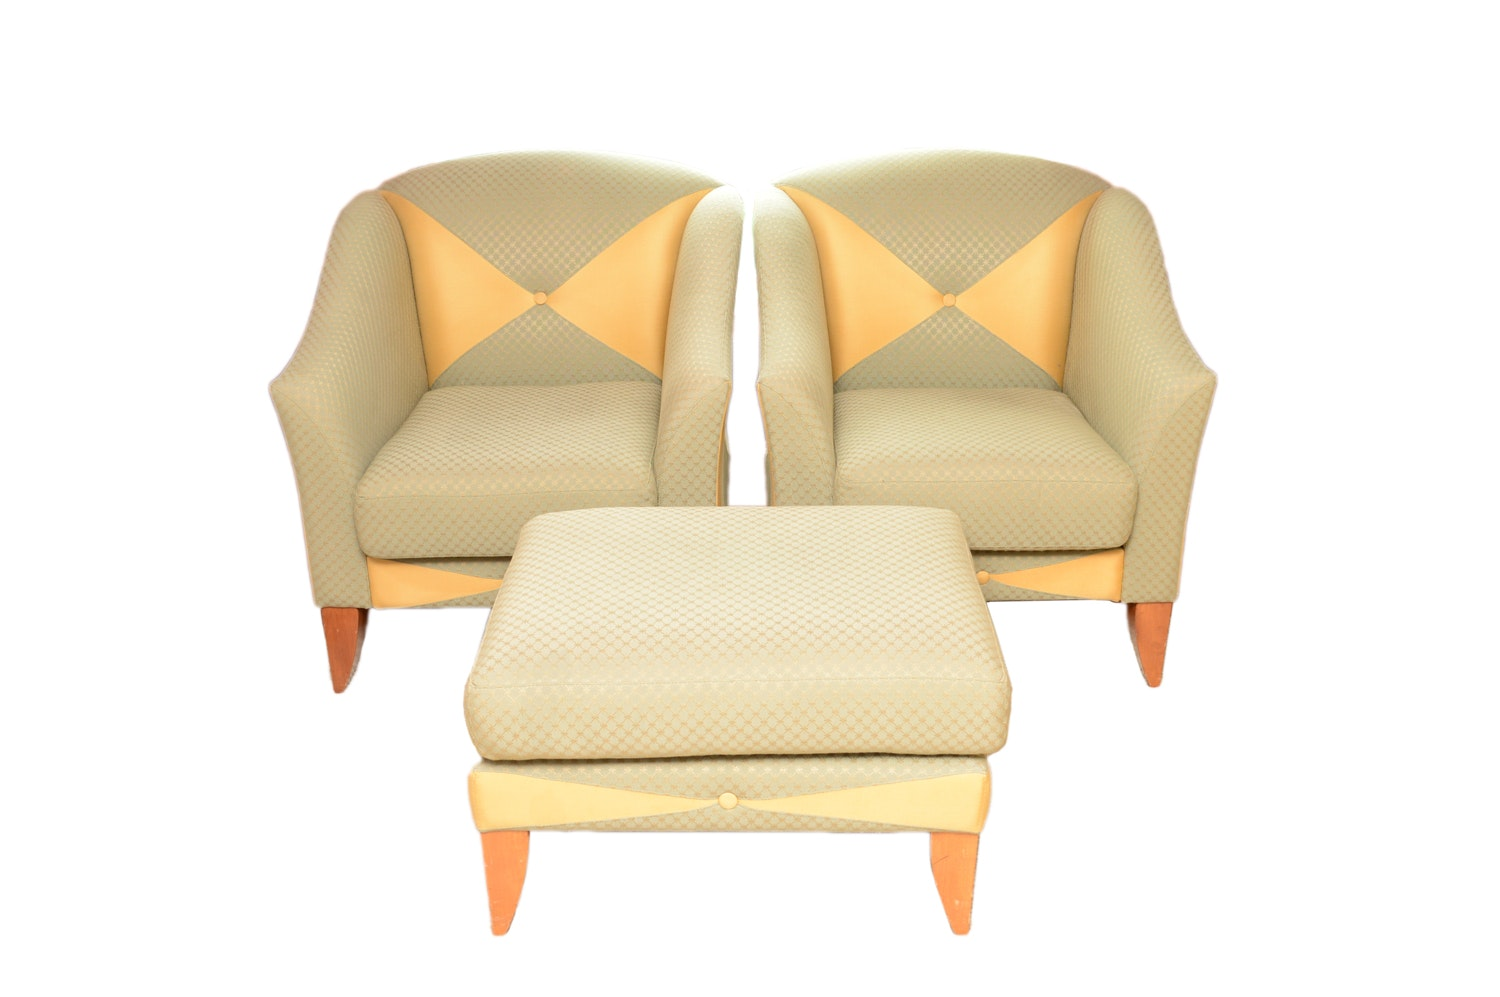 Upholstered Club Chairs and Matching Ottoman